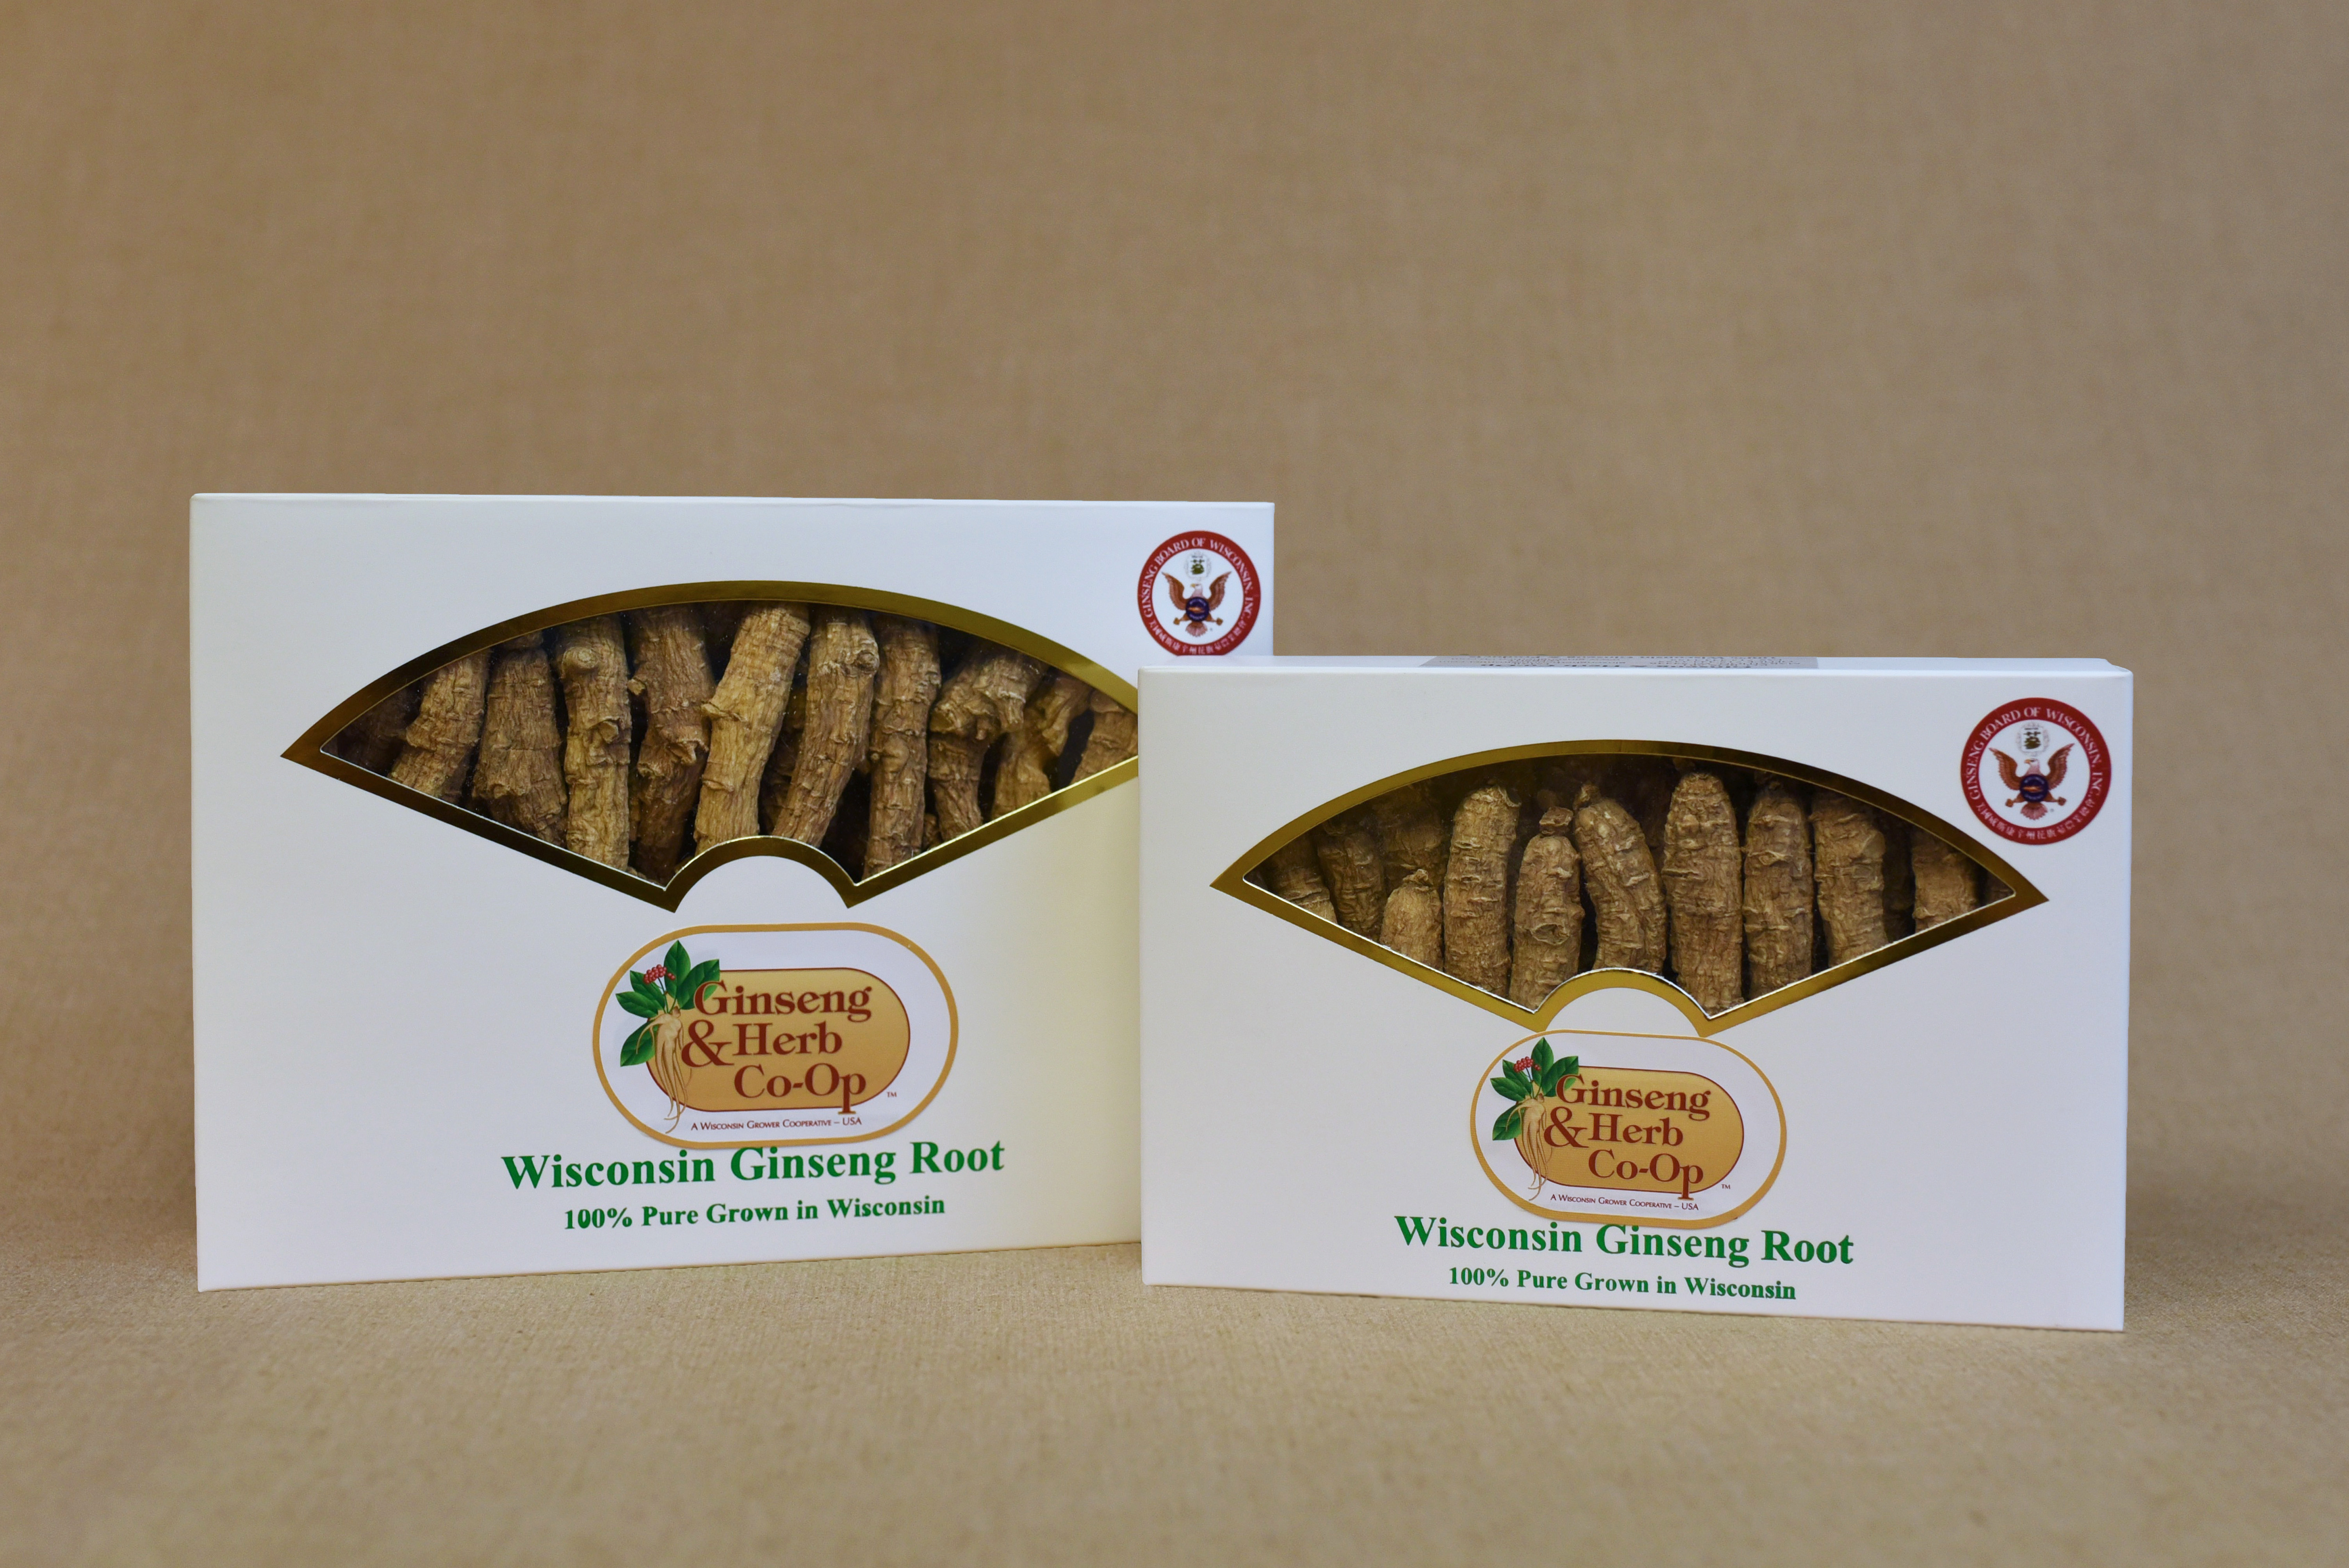 Buy Now! high quality Wisconsin Ginseng roots in Green Bay, WI